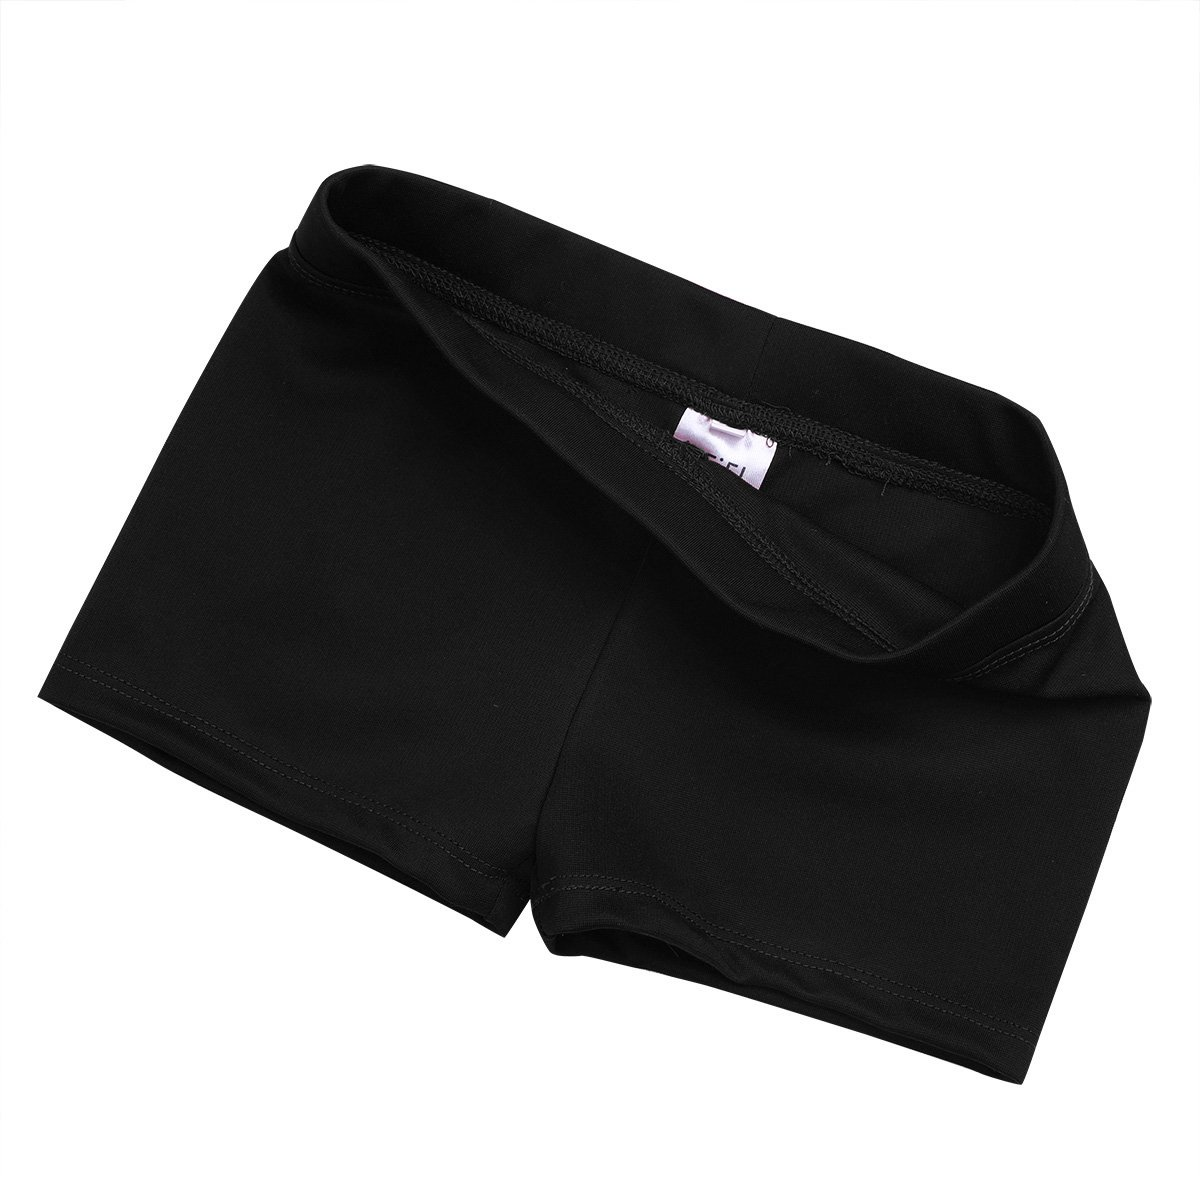 dPois Big Girls Boy Cut Low Rise Gymnastics Sports Ballet Dance Stretch Shorts Workout Cycling Hot Pants